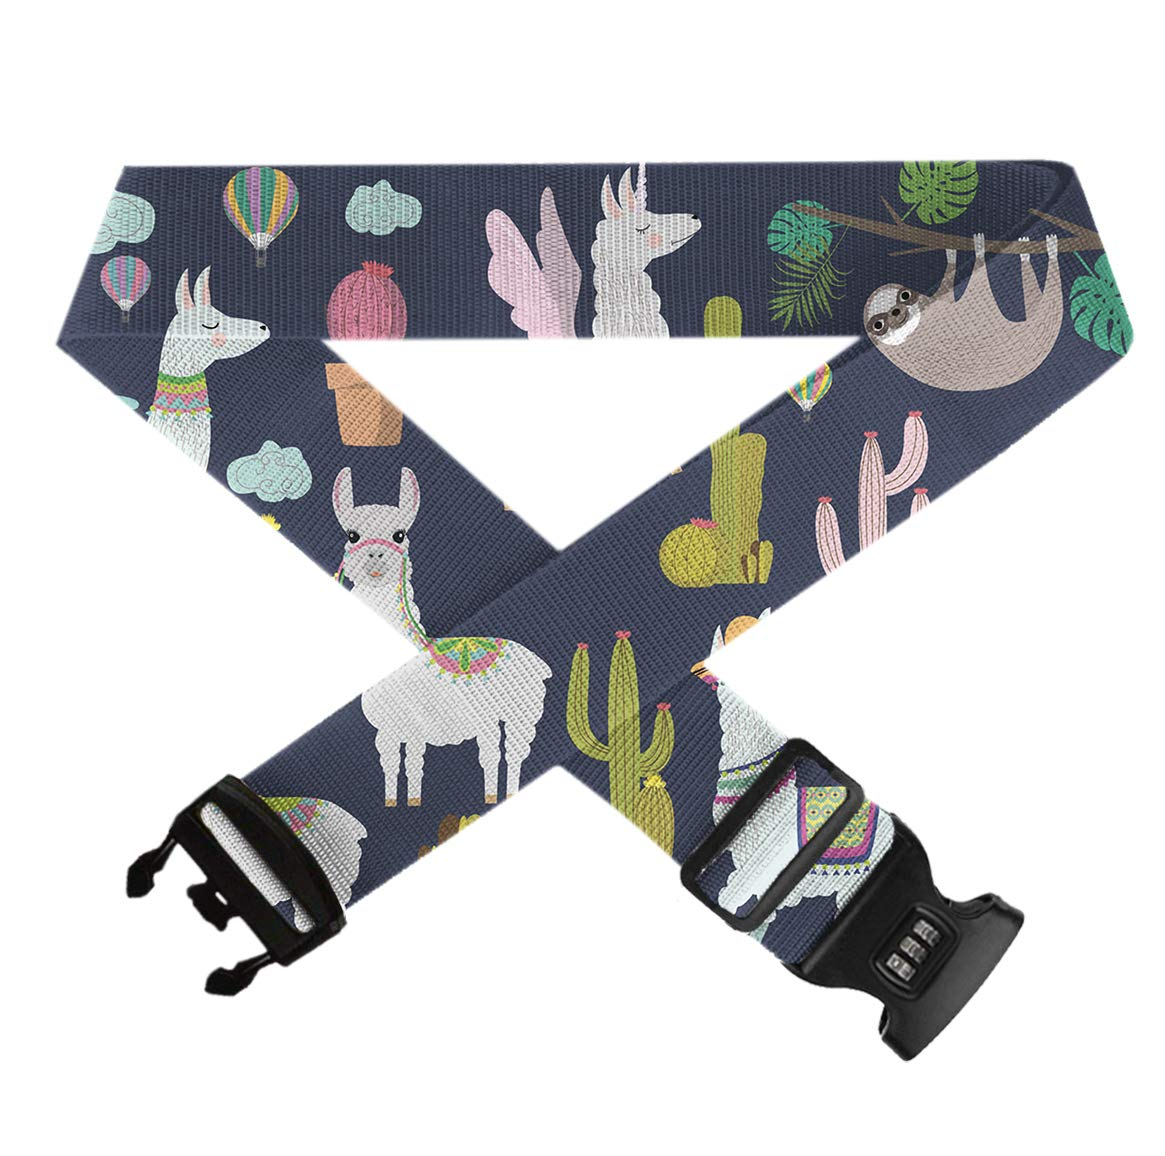 Alpaca Sloth and Catus,Heavy Duty Bag Straps 3 Dial Approved Lock for Extra Luggage//Travel//Business 1 Pack GLORY ART Suitcase Belt Straps